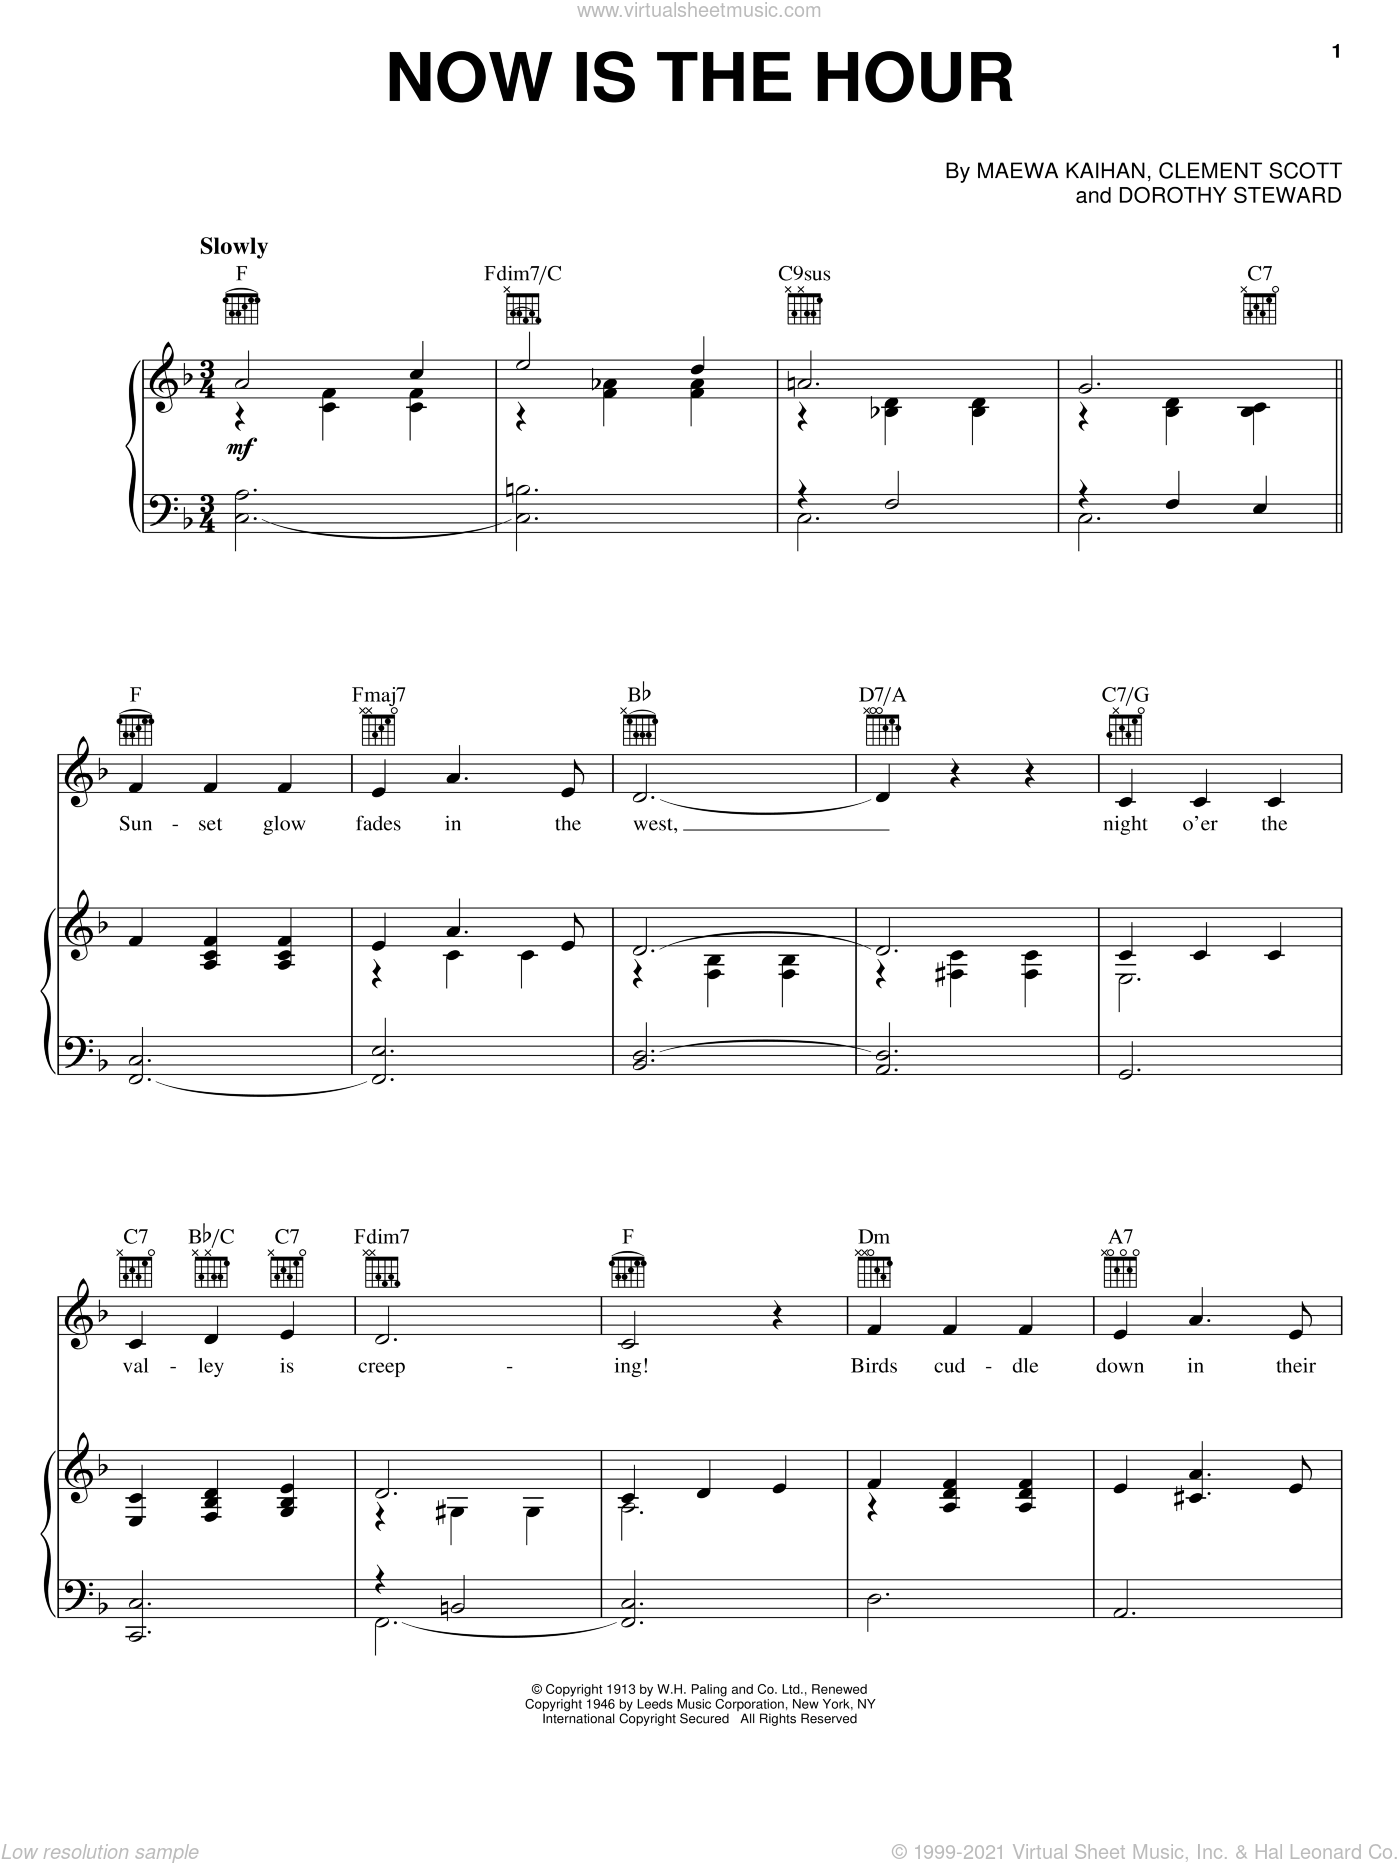 Now Is The Hour (Maori Farewell Song) sheet music for voice, piano or guitar by Maewa Kaithau